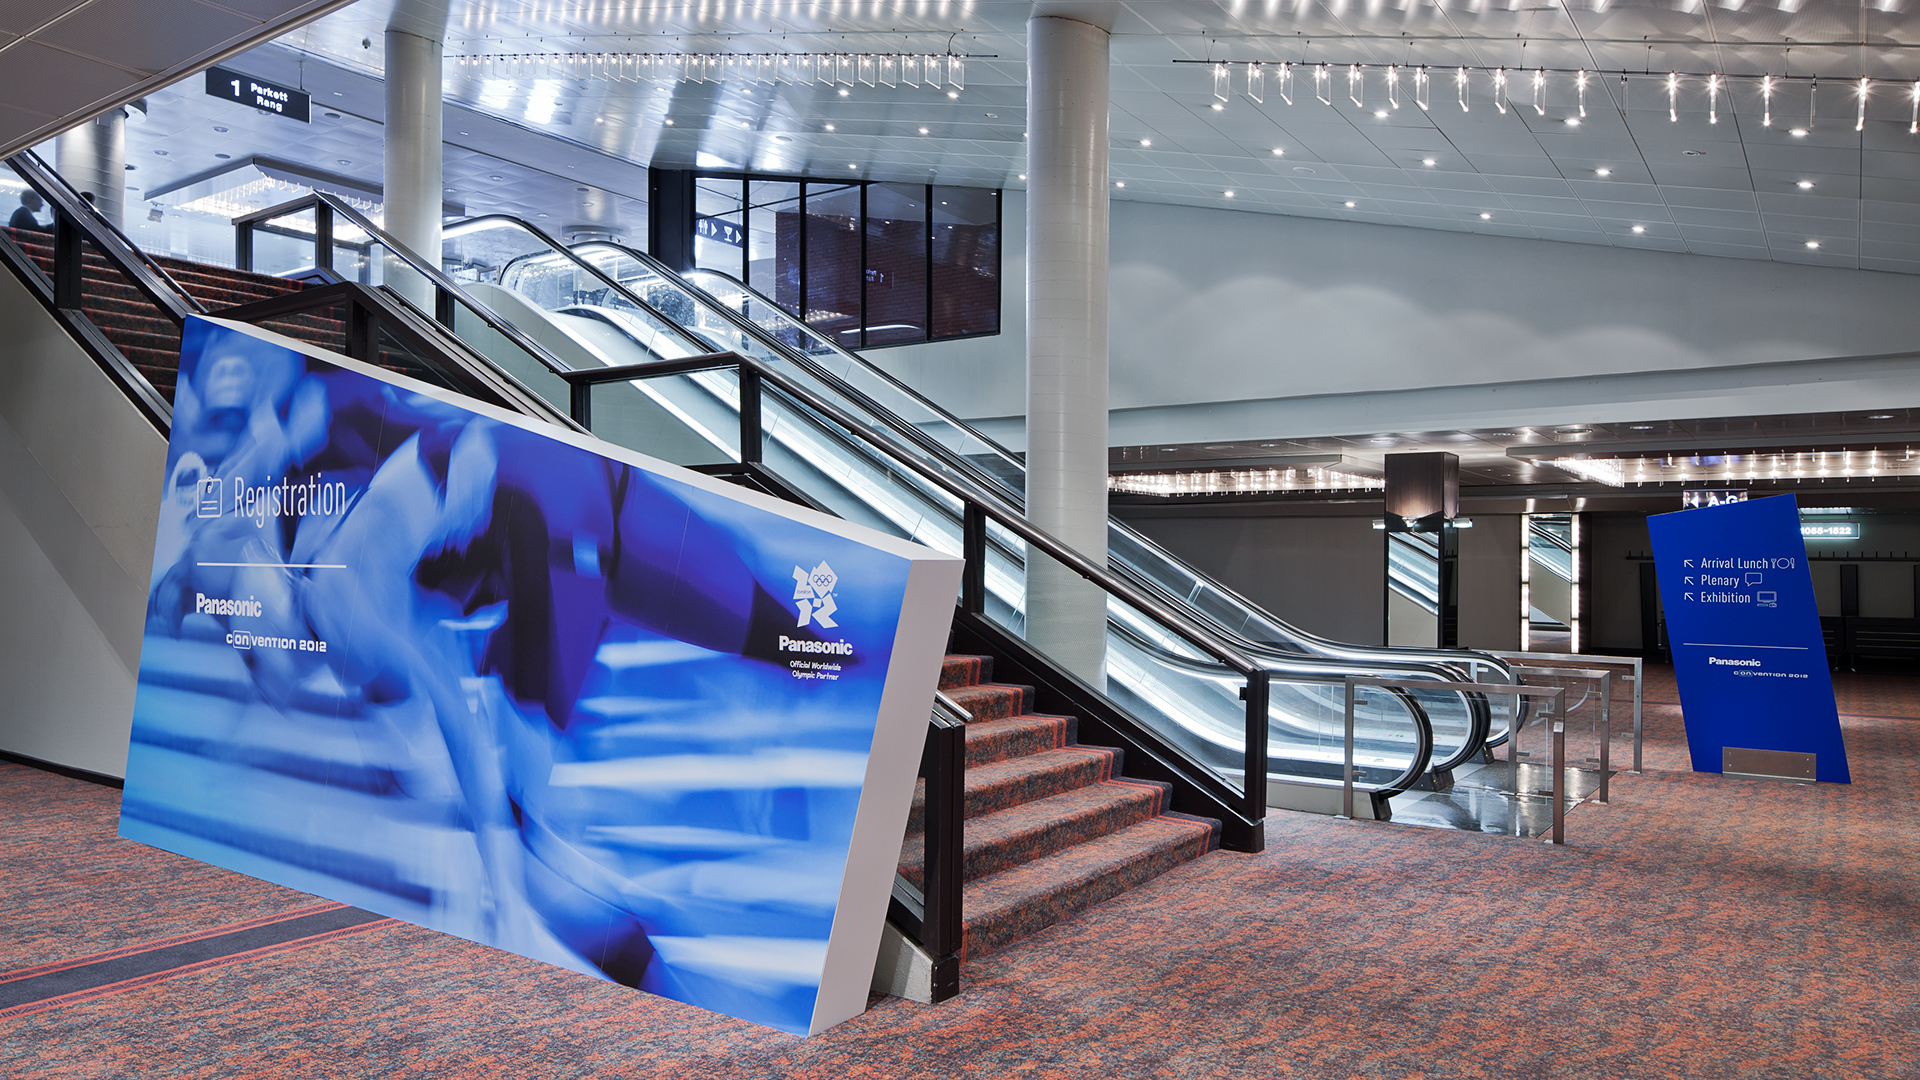 Dart stages the exhibition Convention 2012 for Panasonic